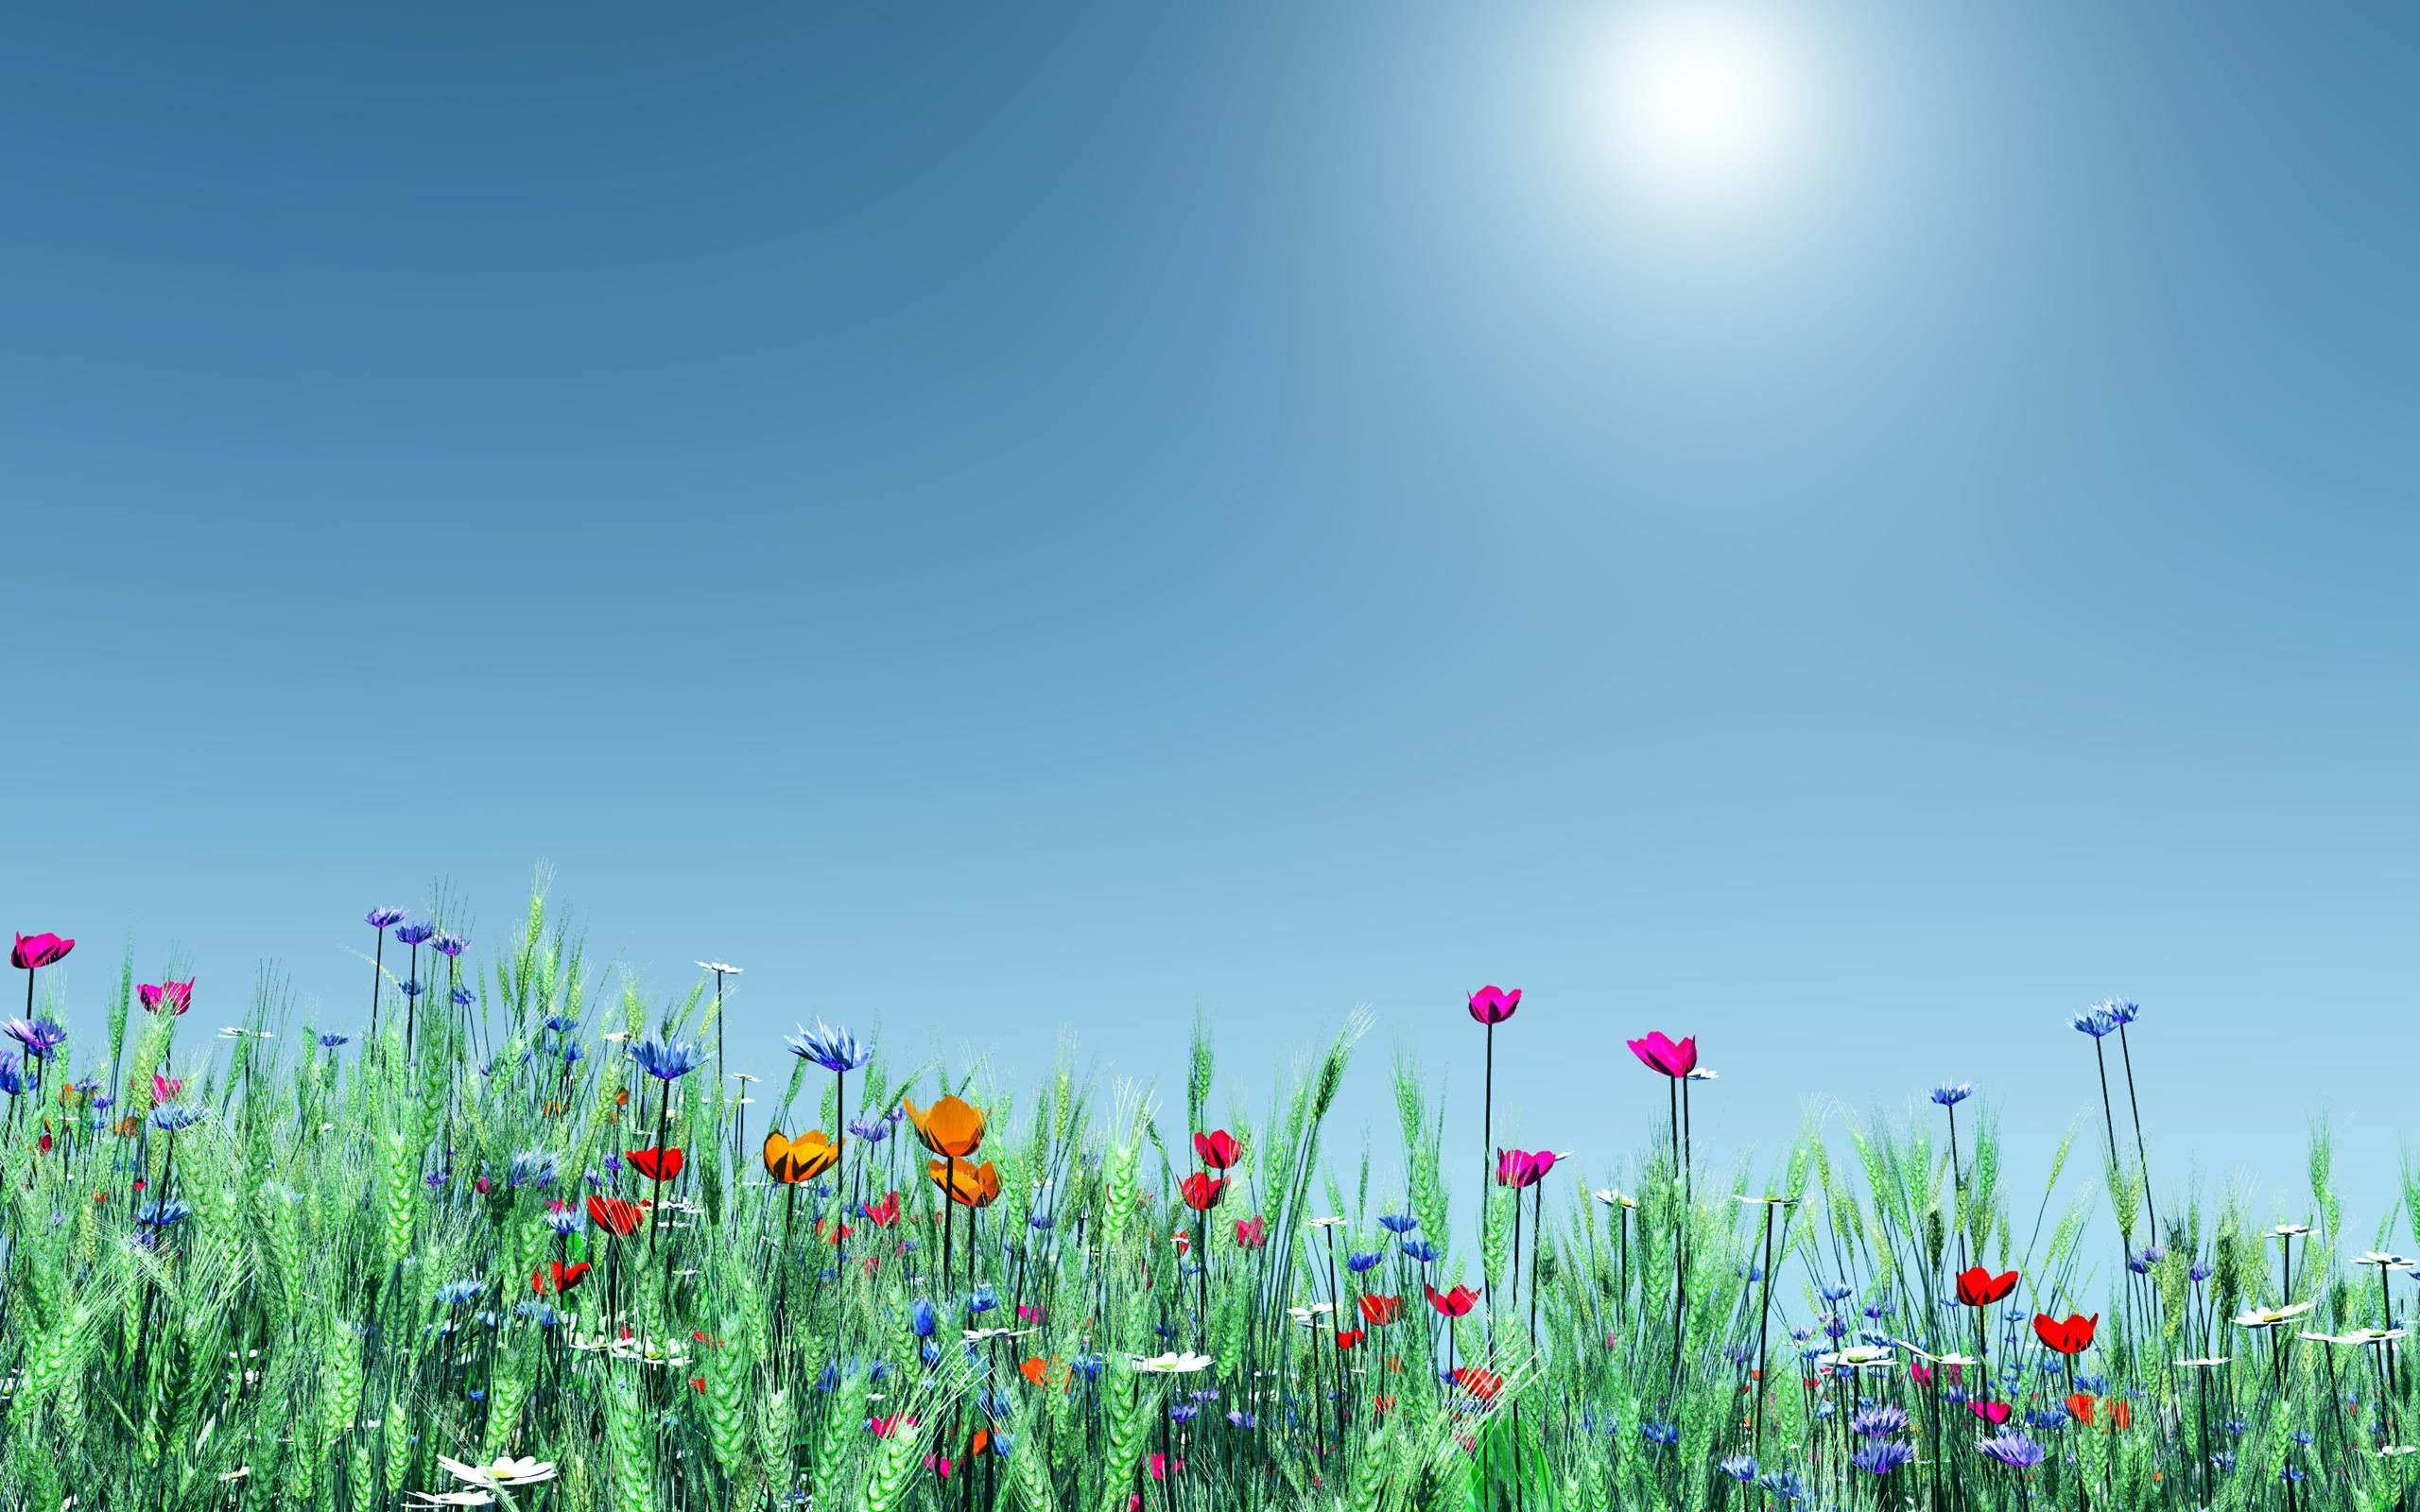 Spring Flowers Windows 8 and 8.1 Wallpapers | Windows 8.1 Themes .